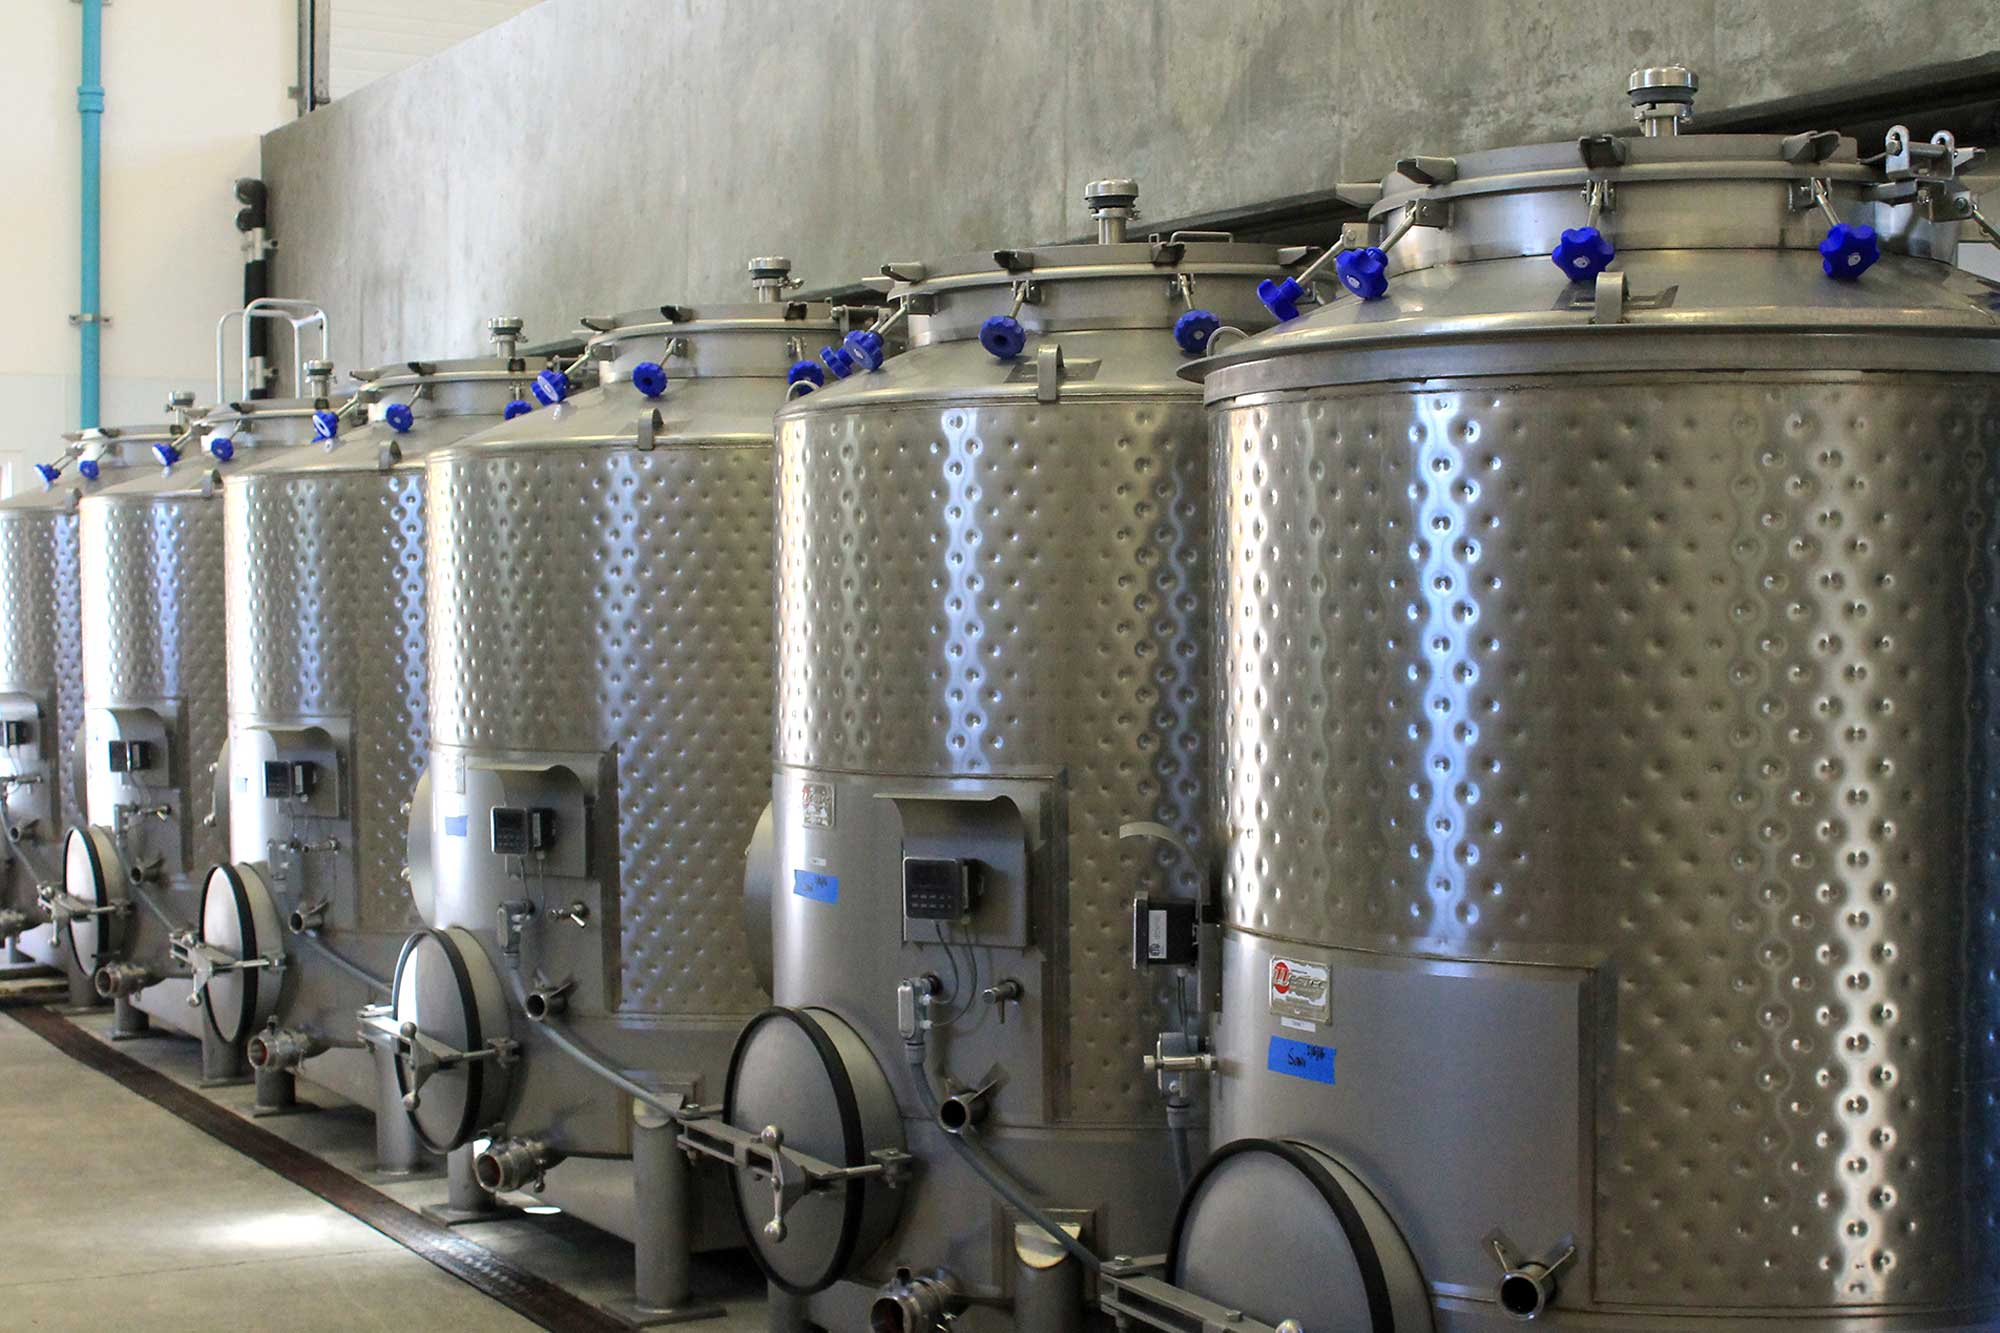 Our stainless wine tanks at Keever Vineyards in Yountville, California